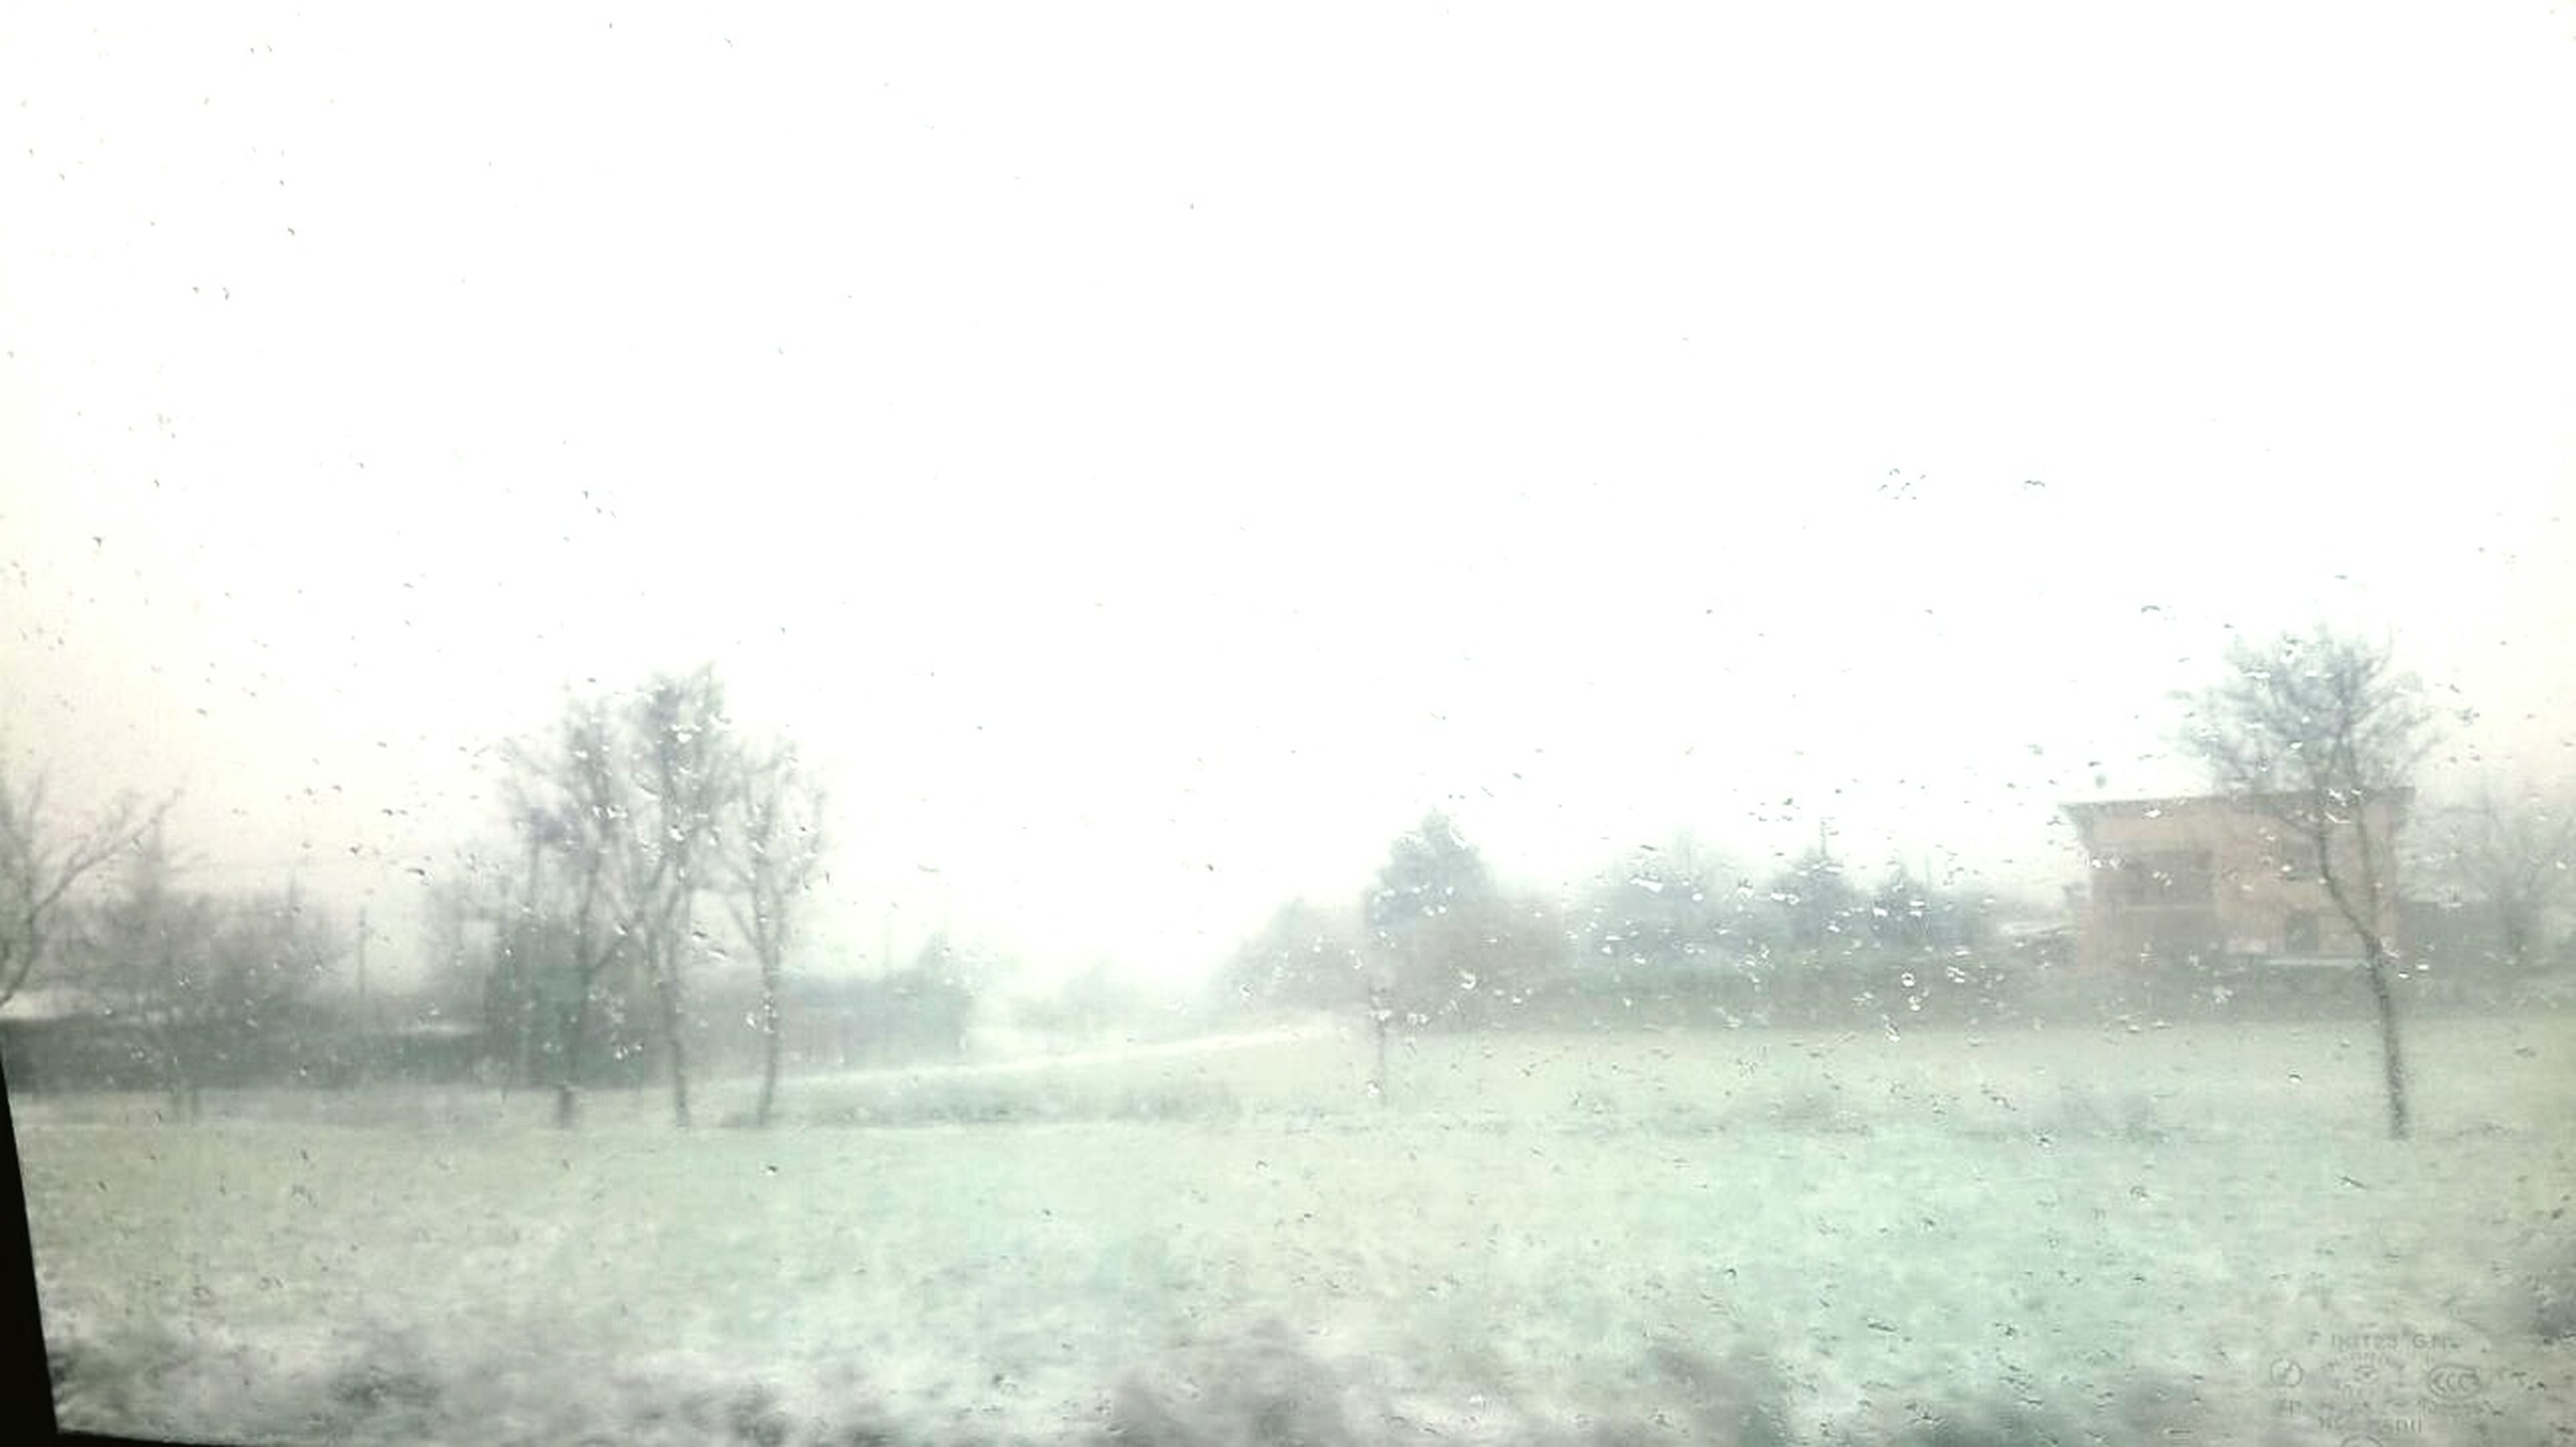 winter, weather, cold temperature, clear sky, snow, season, field, copy space, tree, tranquility, landscape, tranquil scene, nature, beauty in nature, water, scenics, foggy, frozen, day